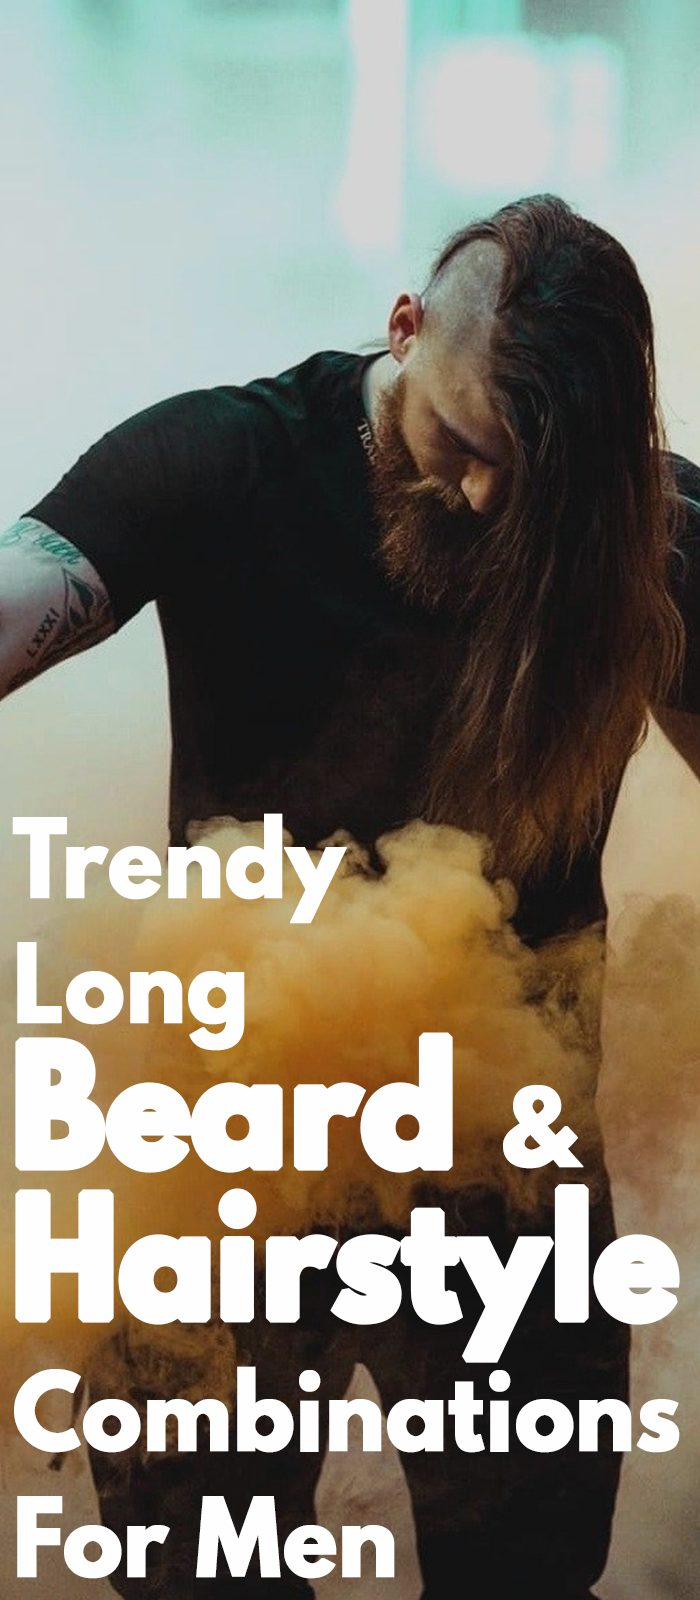 Trendy Long Beard And Hairstyle Combinations For Men